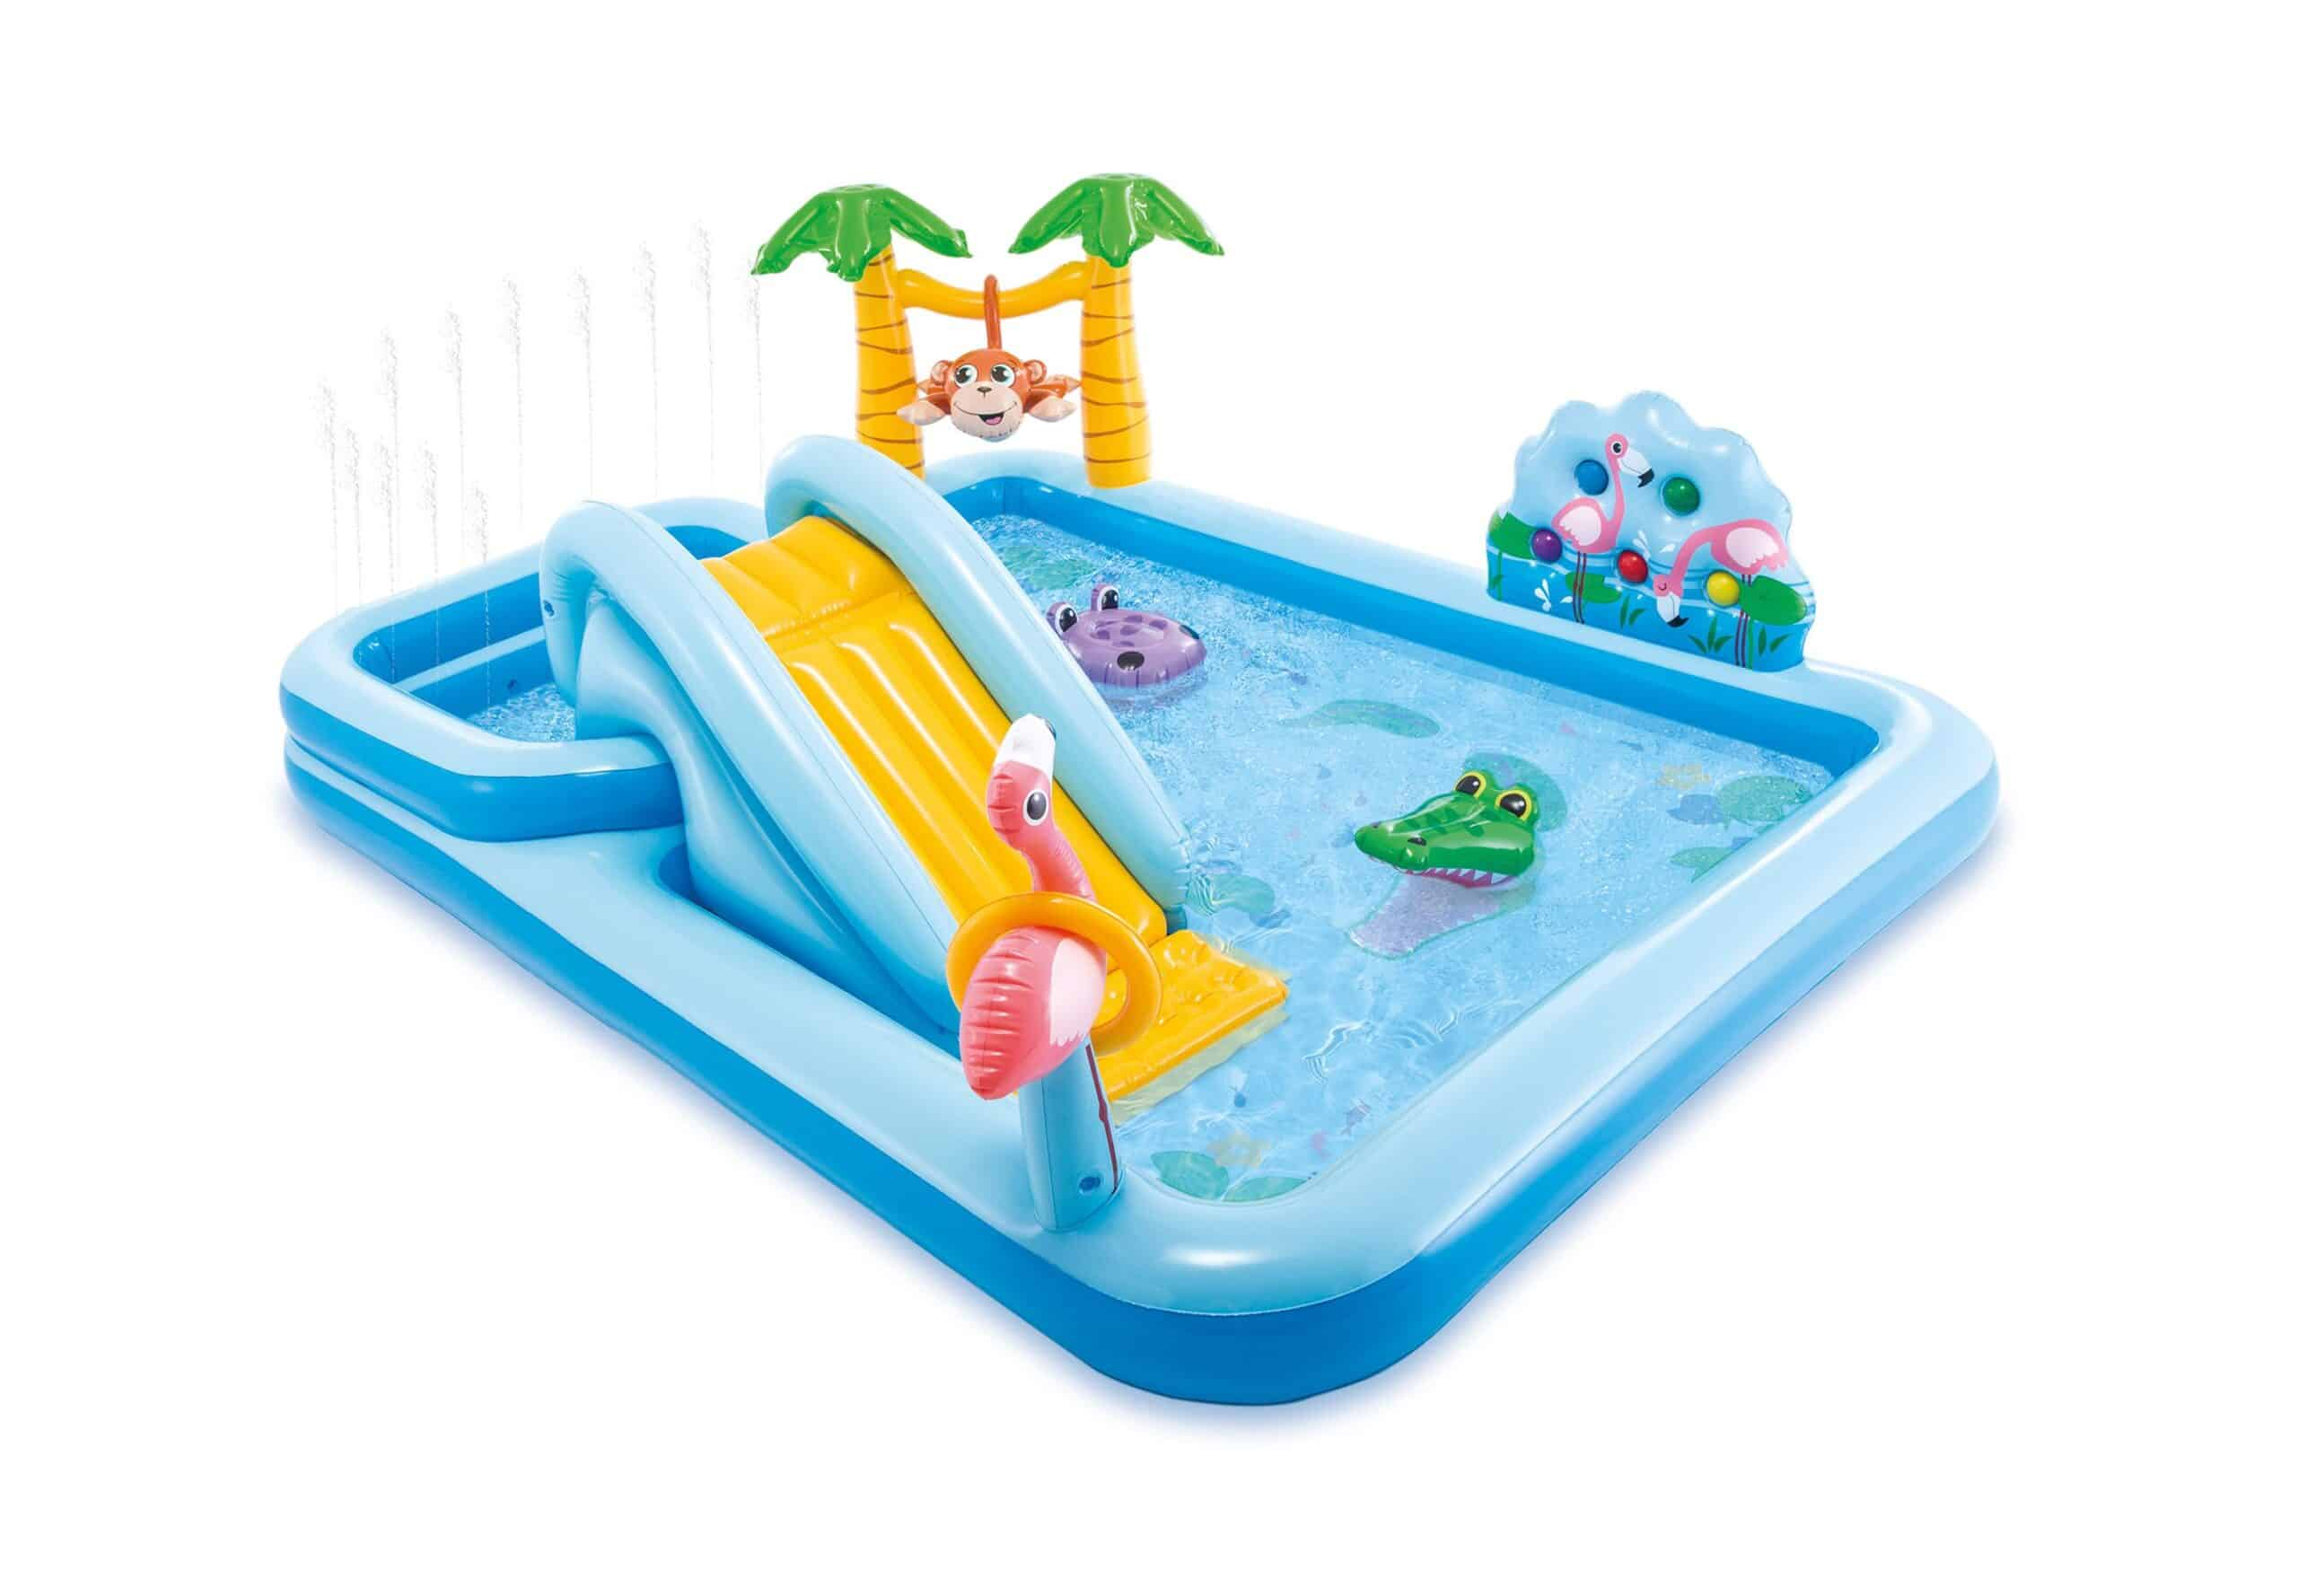 Intex Jungle adventure Play center - Best adventurious kiddie pool